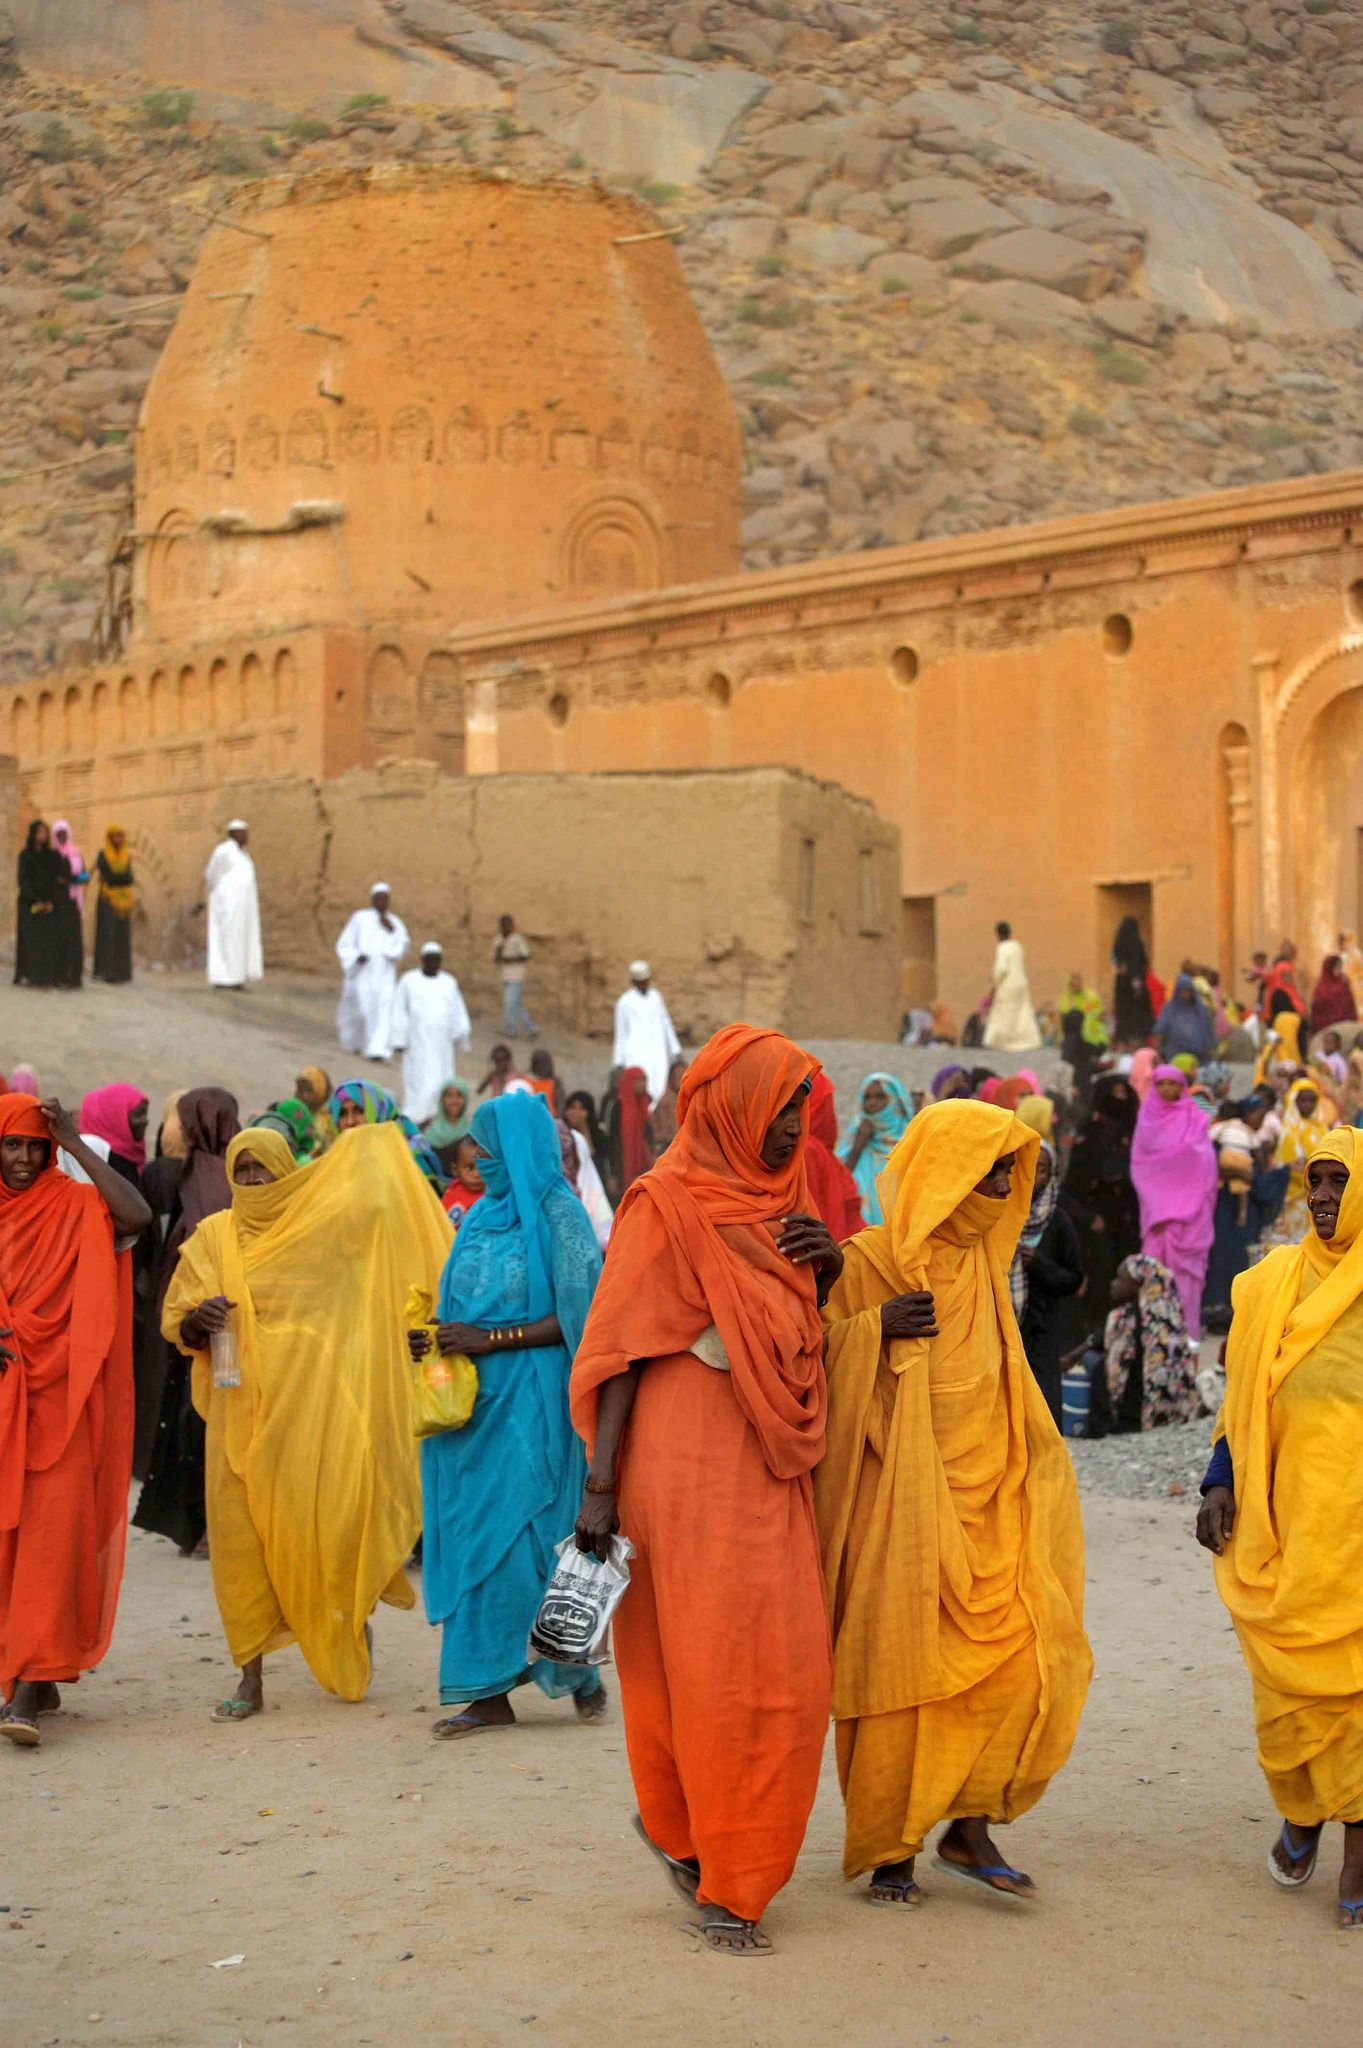 Haddendowa Tribe Women In Kassala Mosque Sudan Tribes Women African People Solo Female Travel